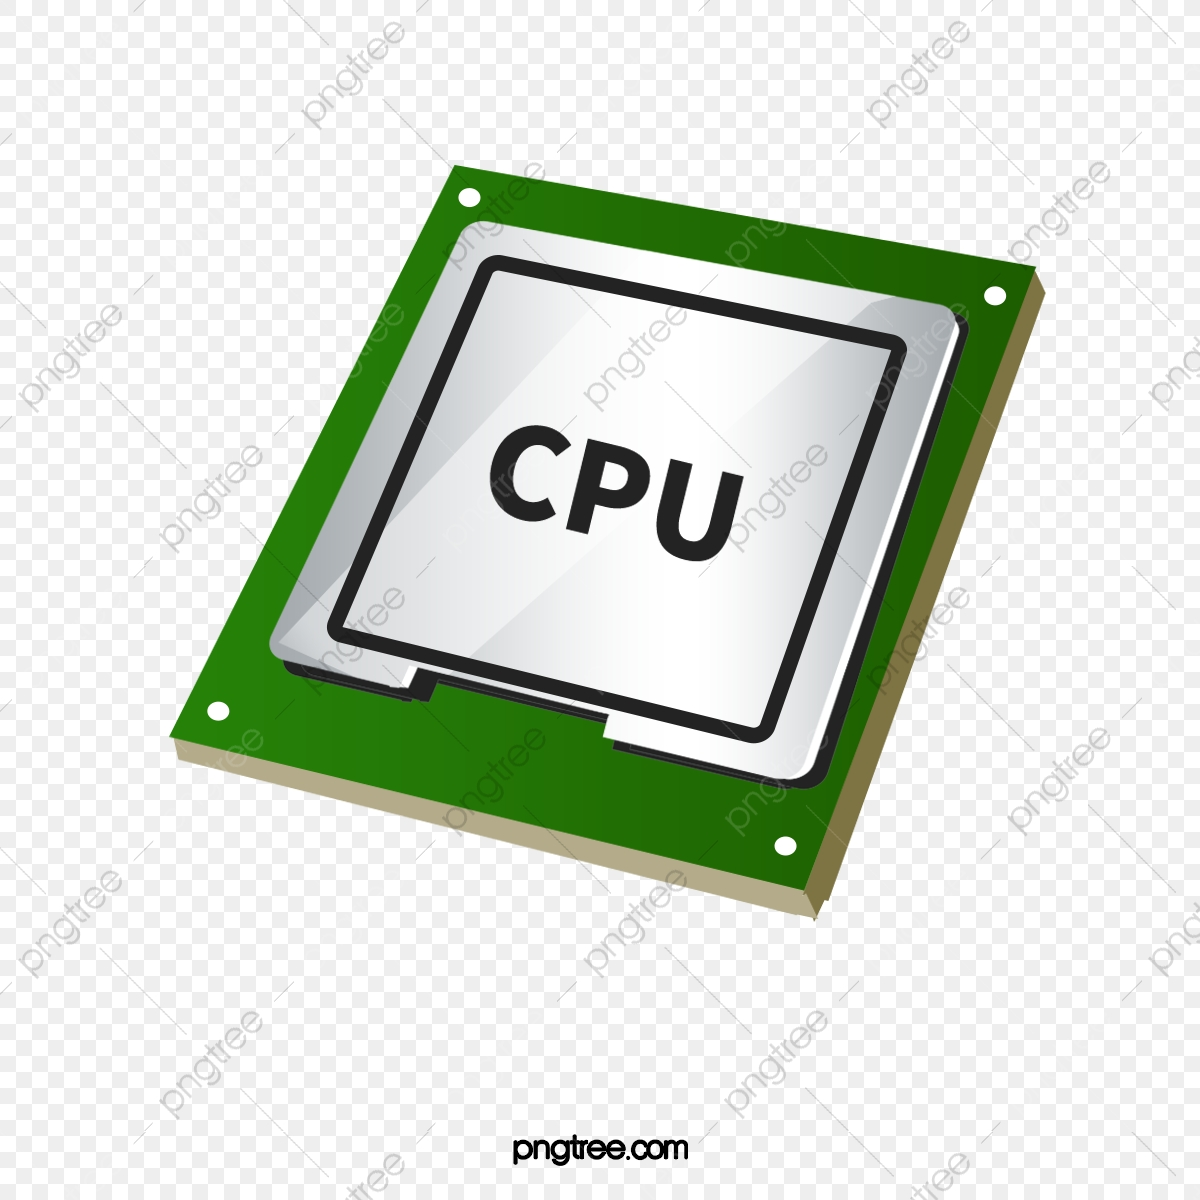 Cpu, Computer Accessories, Electronic Product, Metal PNG Transparent.